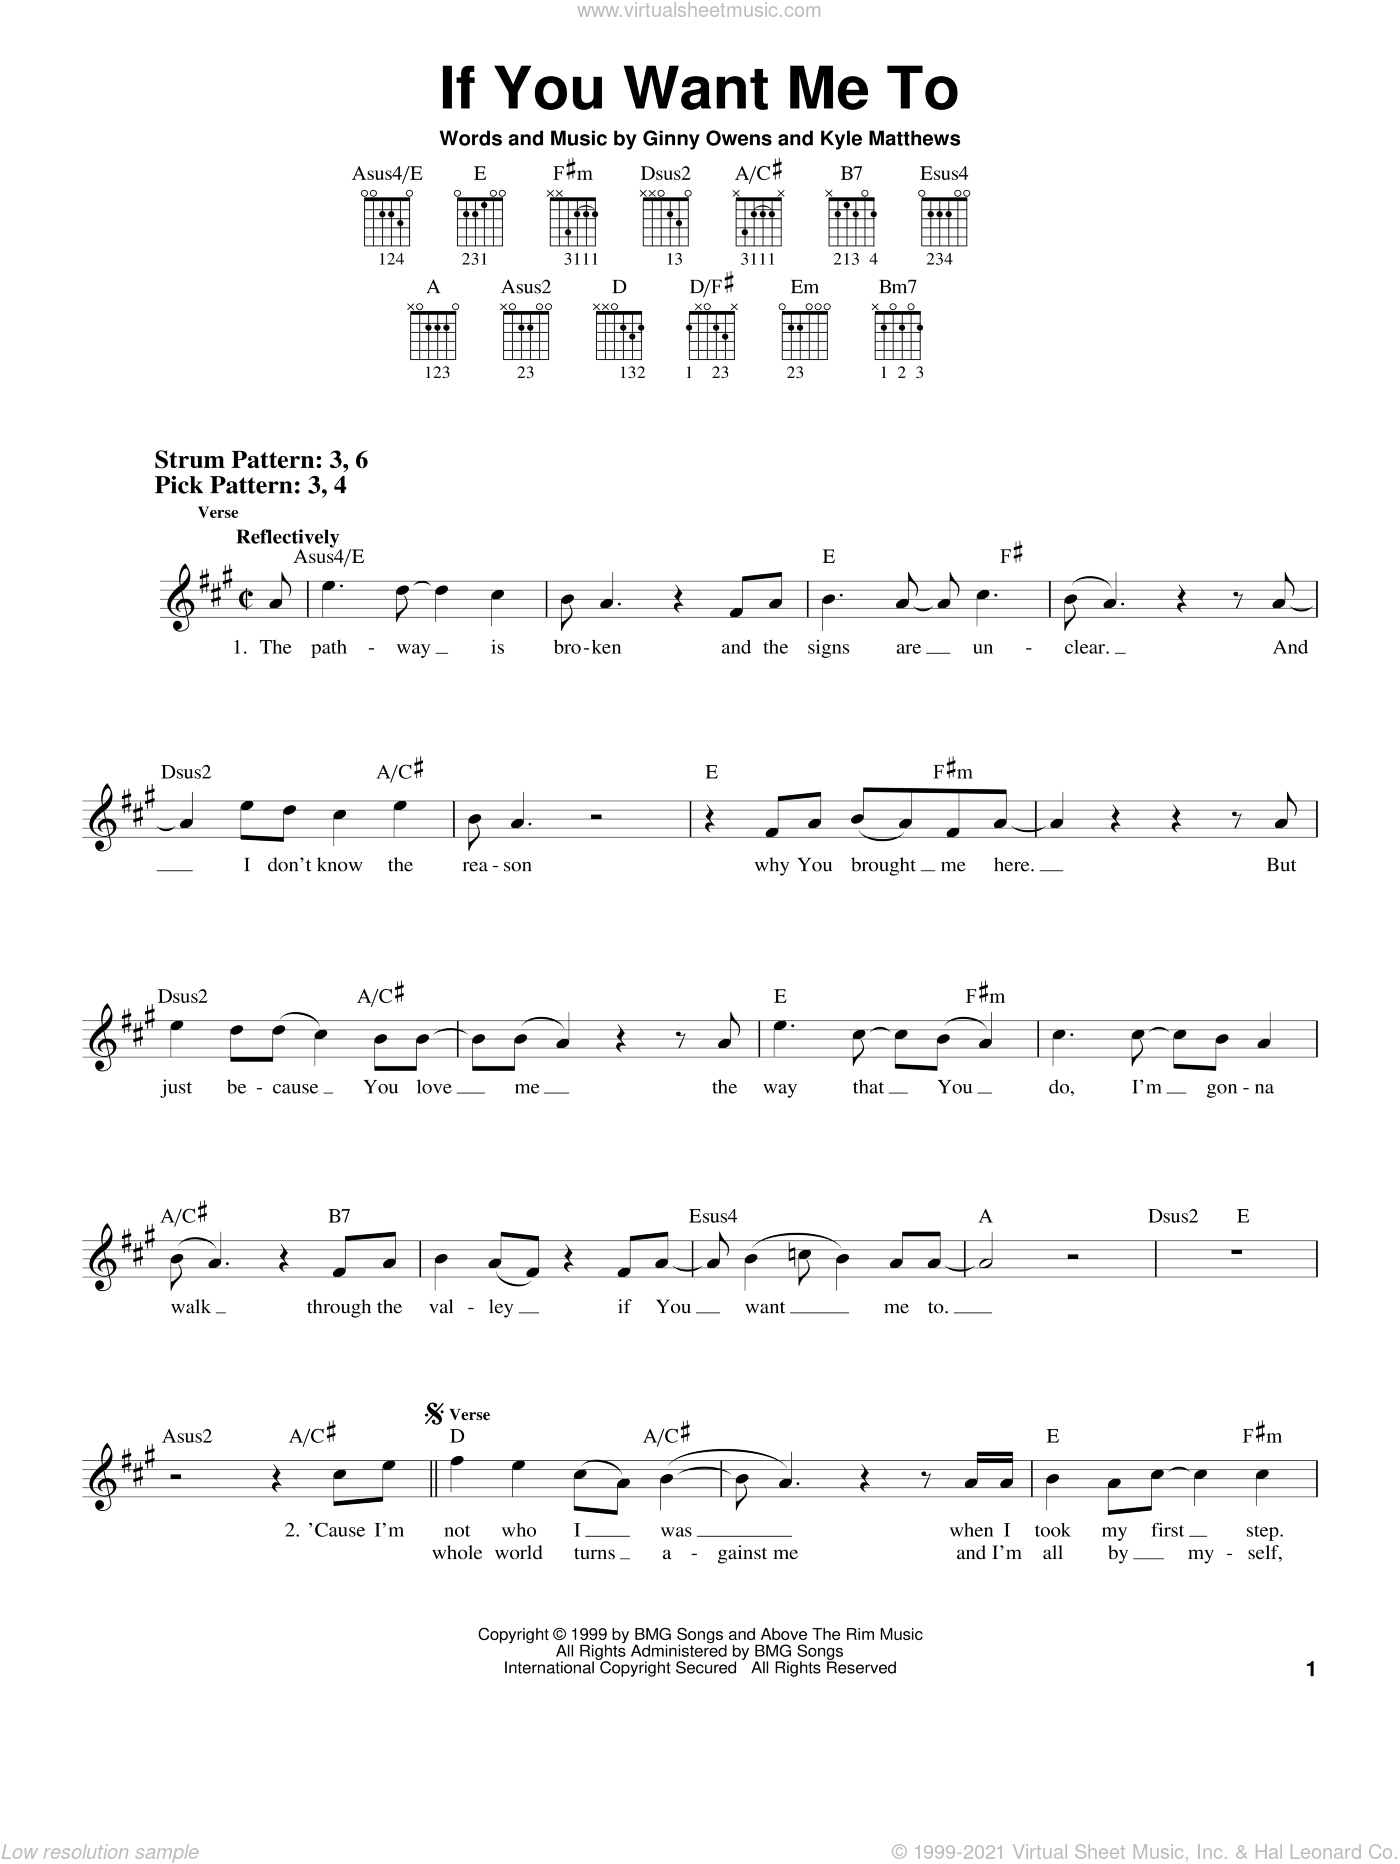 If You Want Me To sheet music for guitar solo (chords) by Kyle Matthews